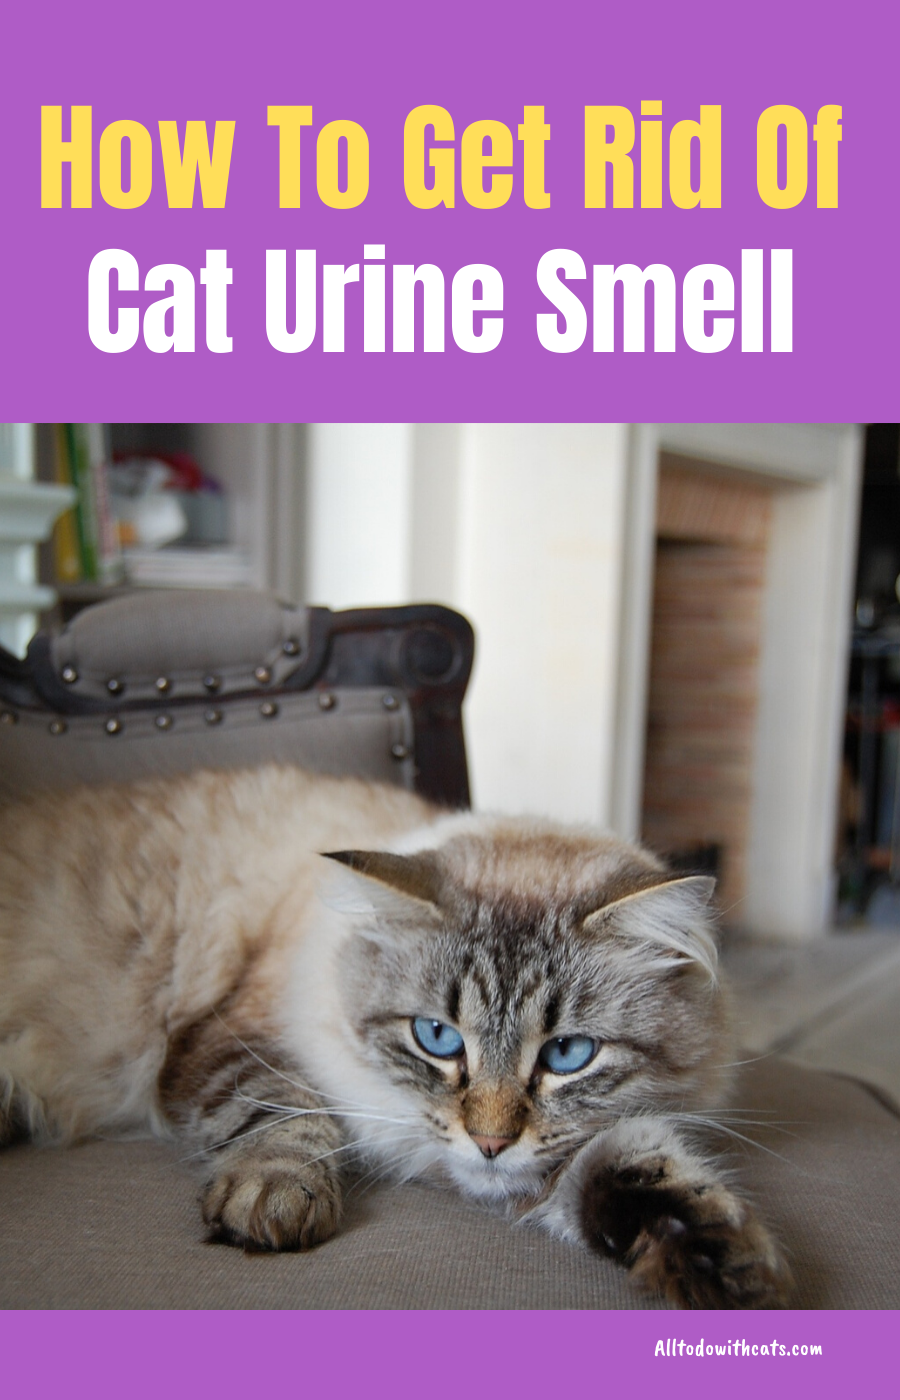 How To Get Rid Of Cat Urine Smell For A Fresher Home With Images Cat Urine Smells Cat Urine Urine Smells